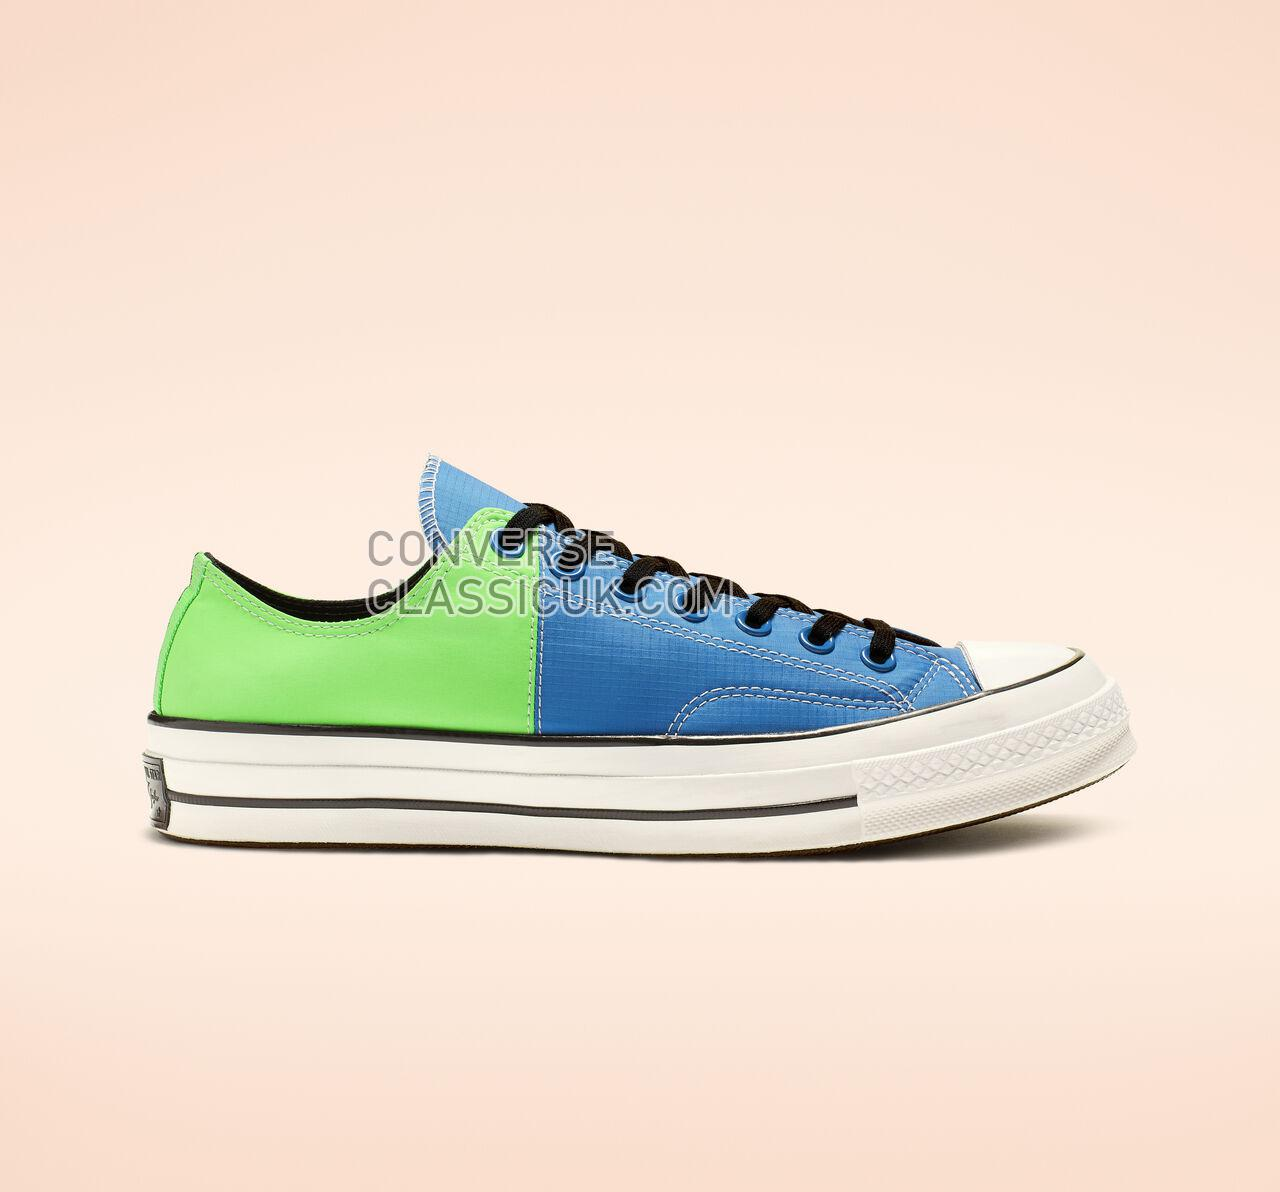 Converse Chuck 70 Get Tubed Low Top Mens Womens Unisex 164089C Totally Blue/Acid Green/White Shoes